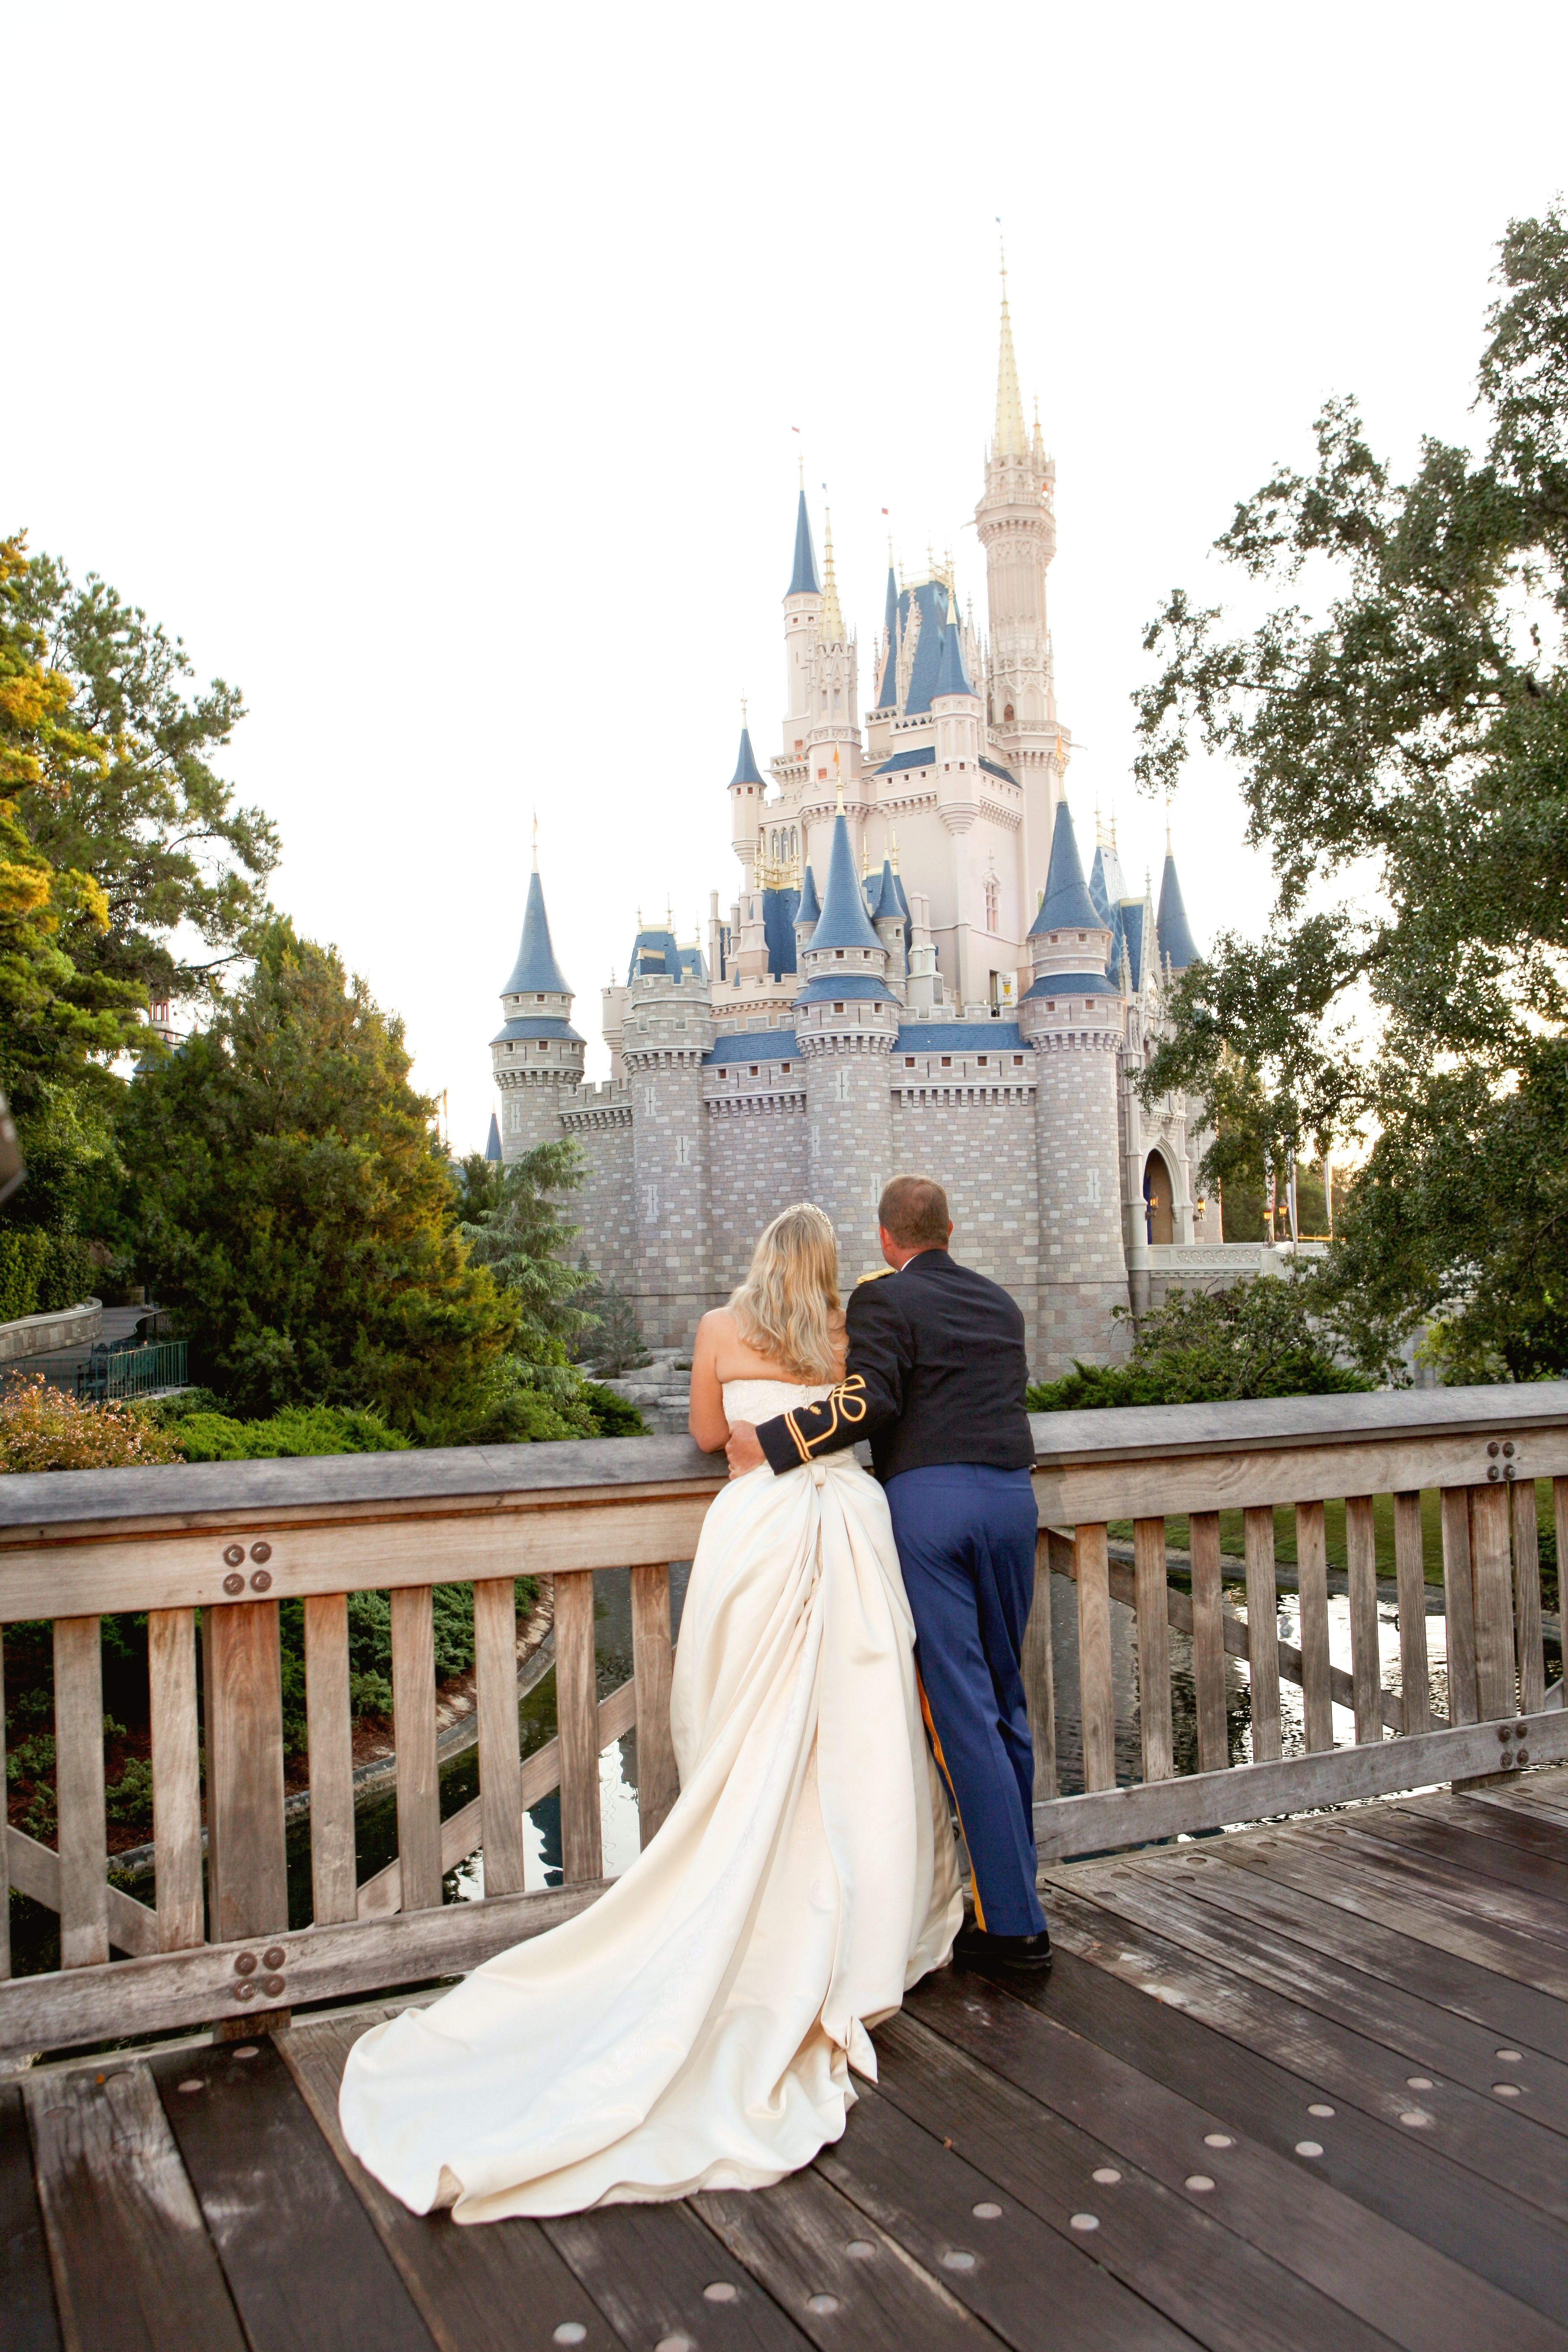 Vow Renewal At Disney World For Our 10 Or 15 Year Anniversary Thats Where I Want To Do It